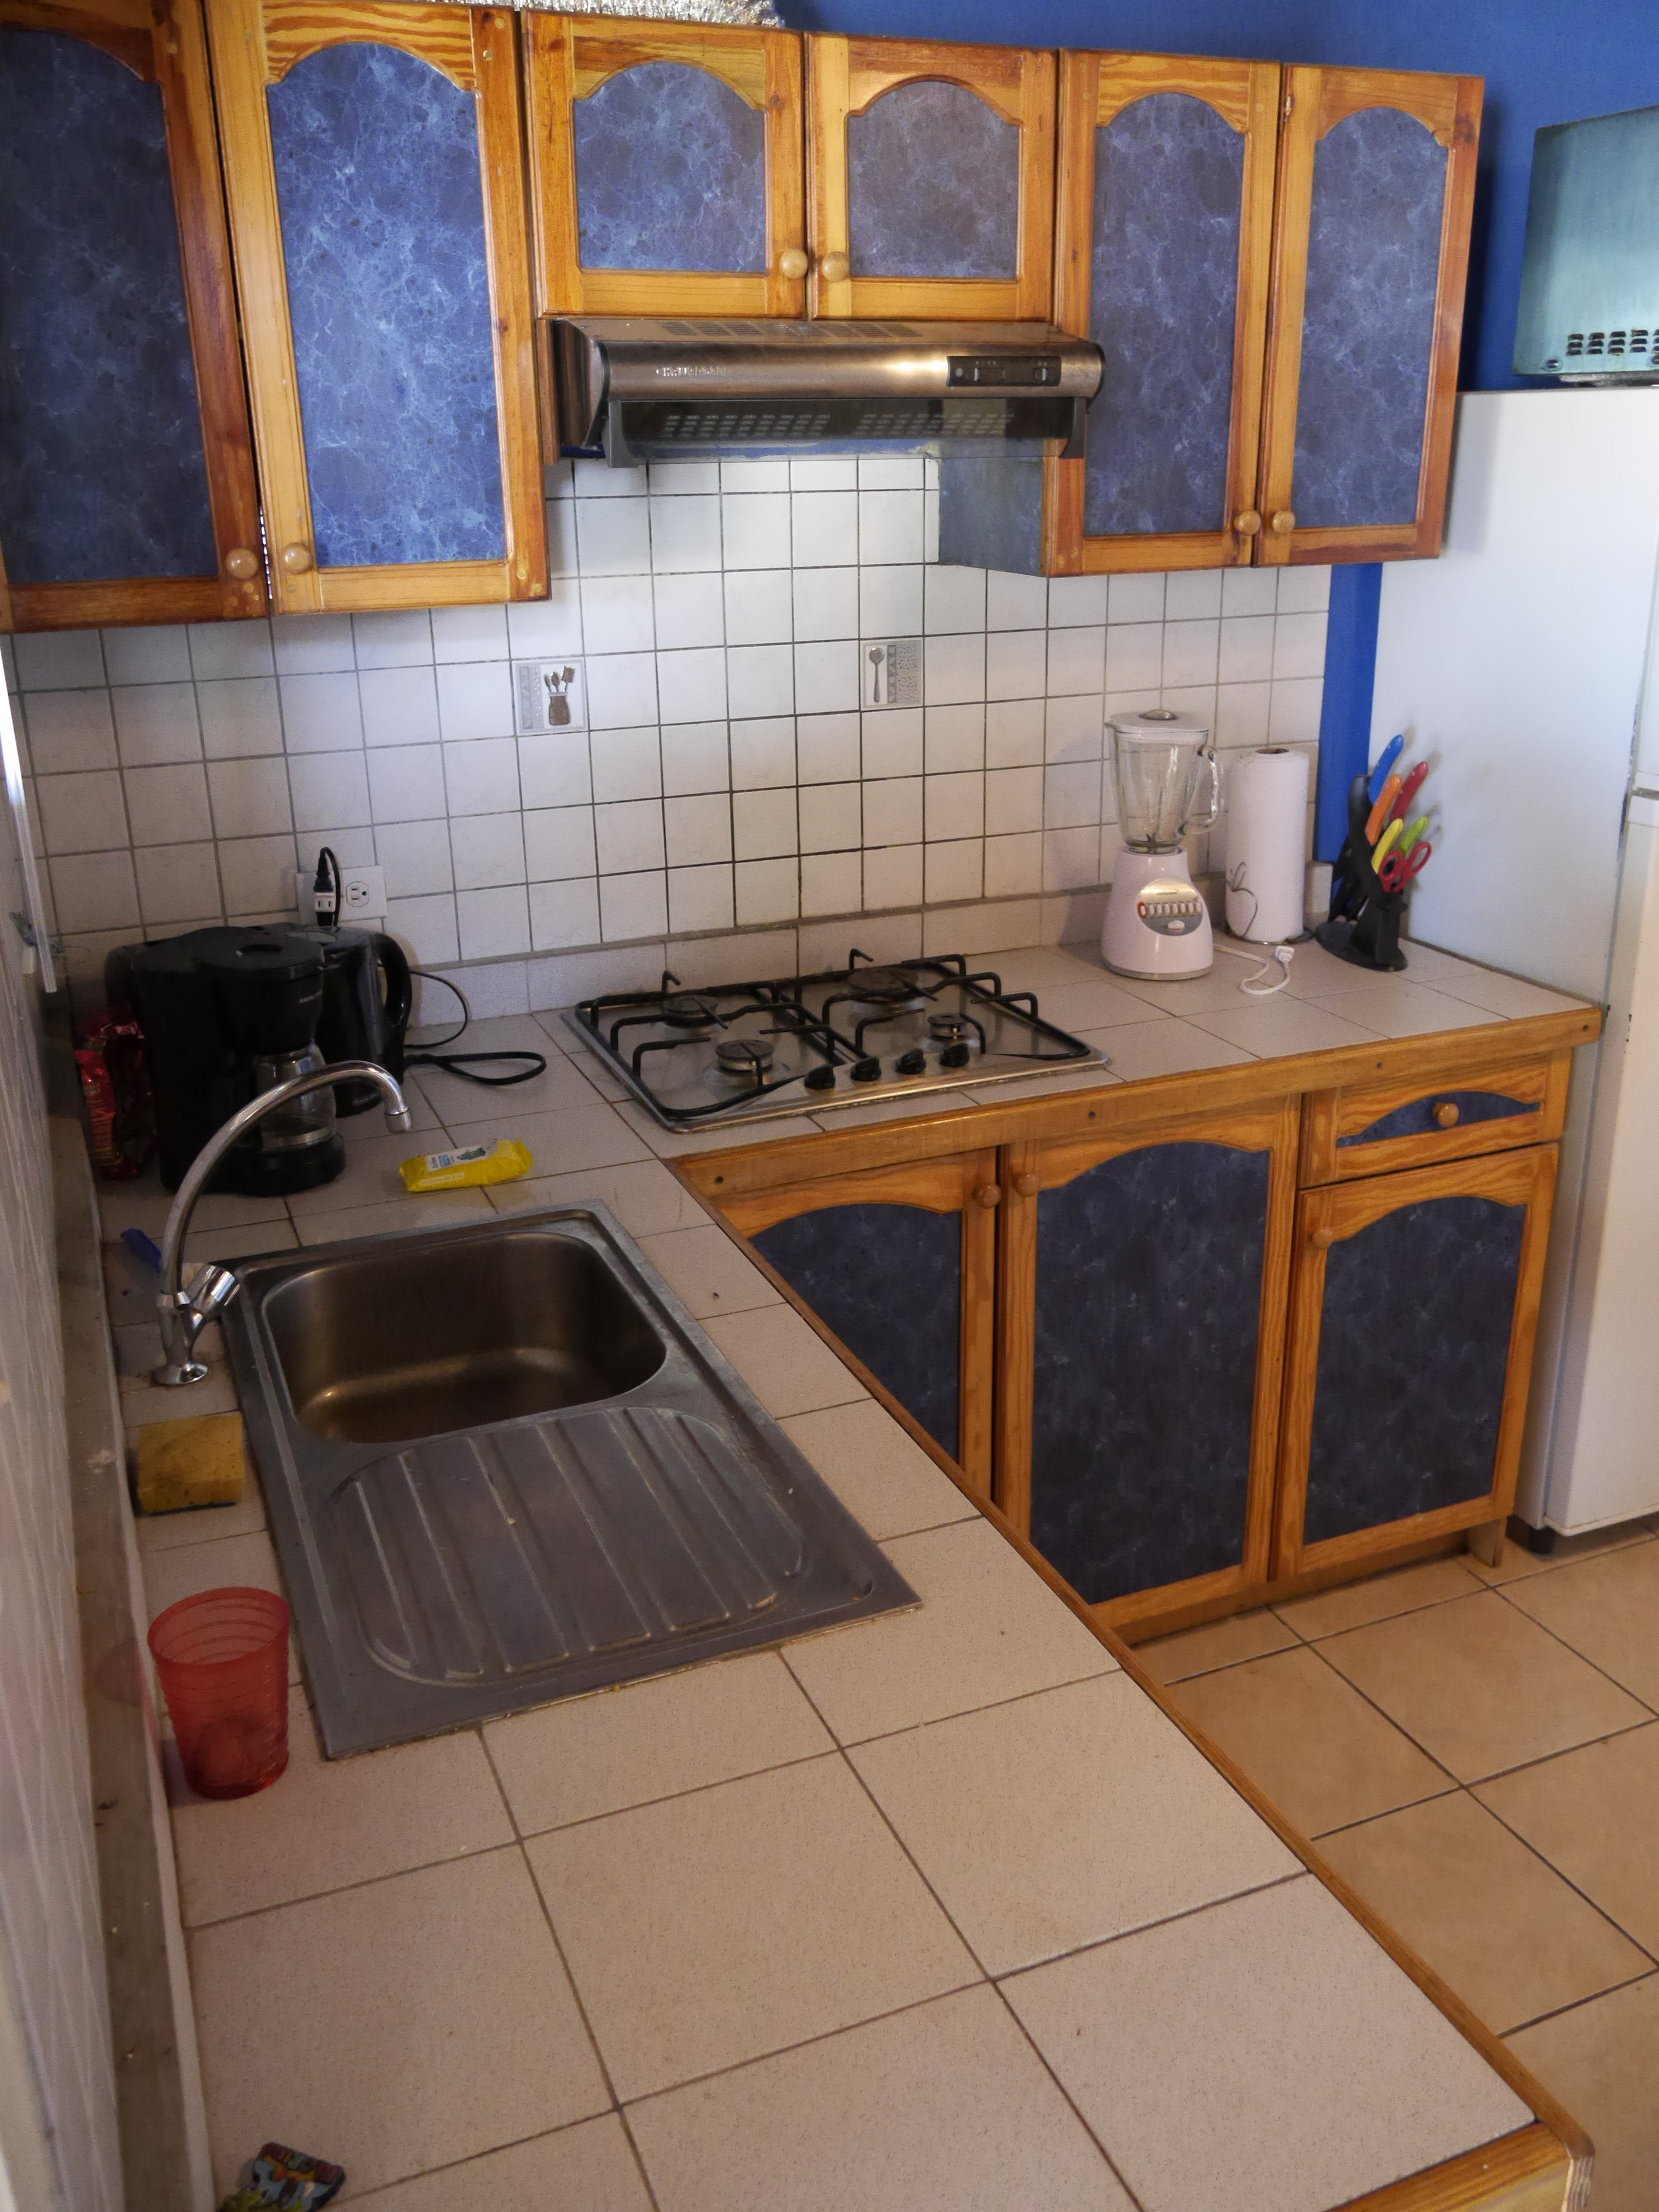 Kitchen well furnished and equipped.